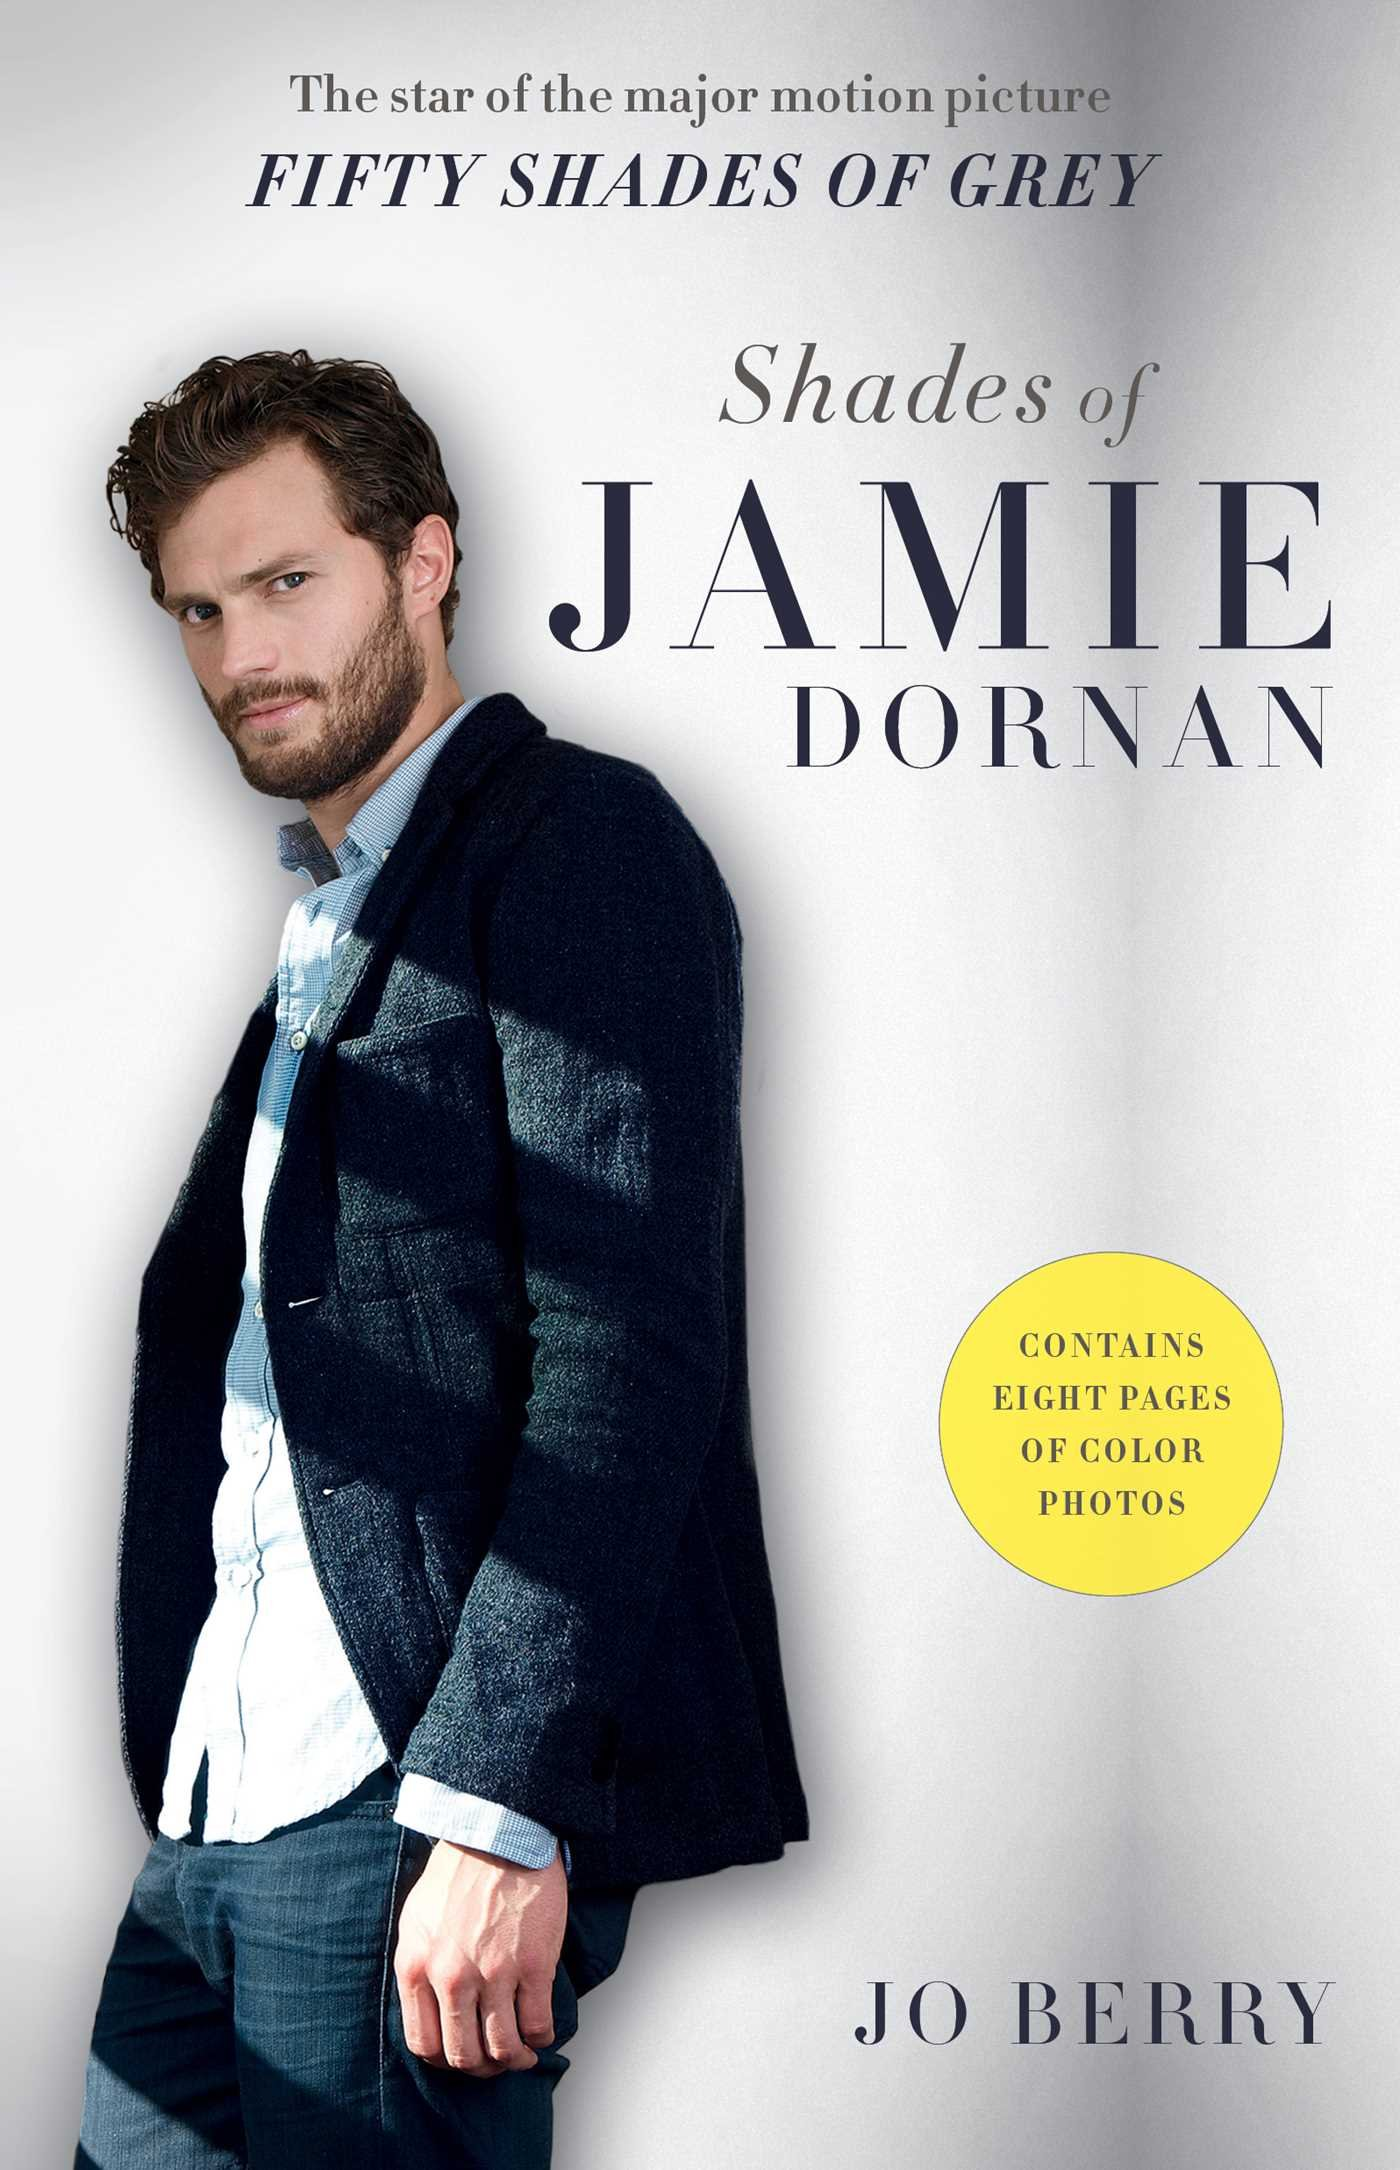 shades of jamie dornan the star of the major motion picture fifty shades of jamie dornan the star of the major motion picture fifty shades of grey jo berry 9781501107887 com books